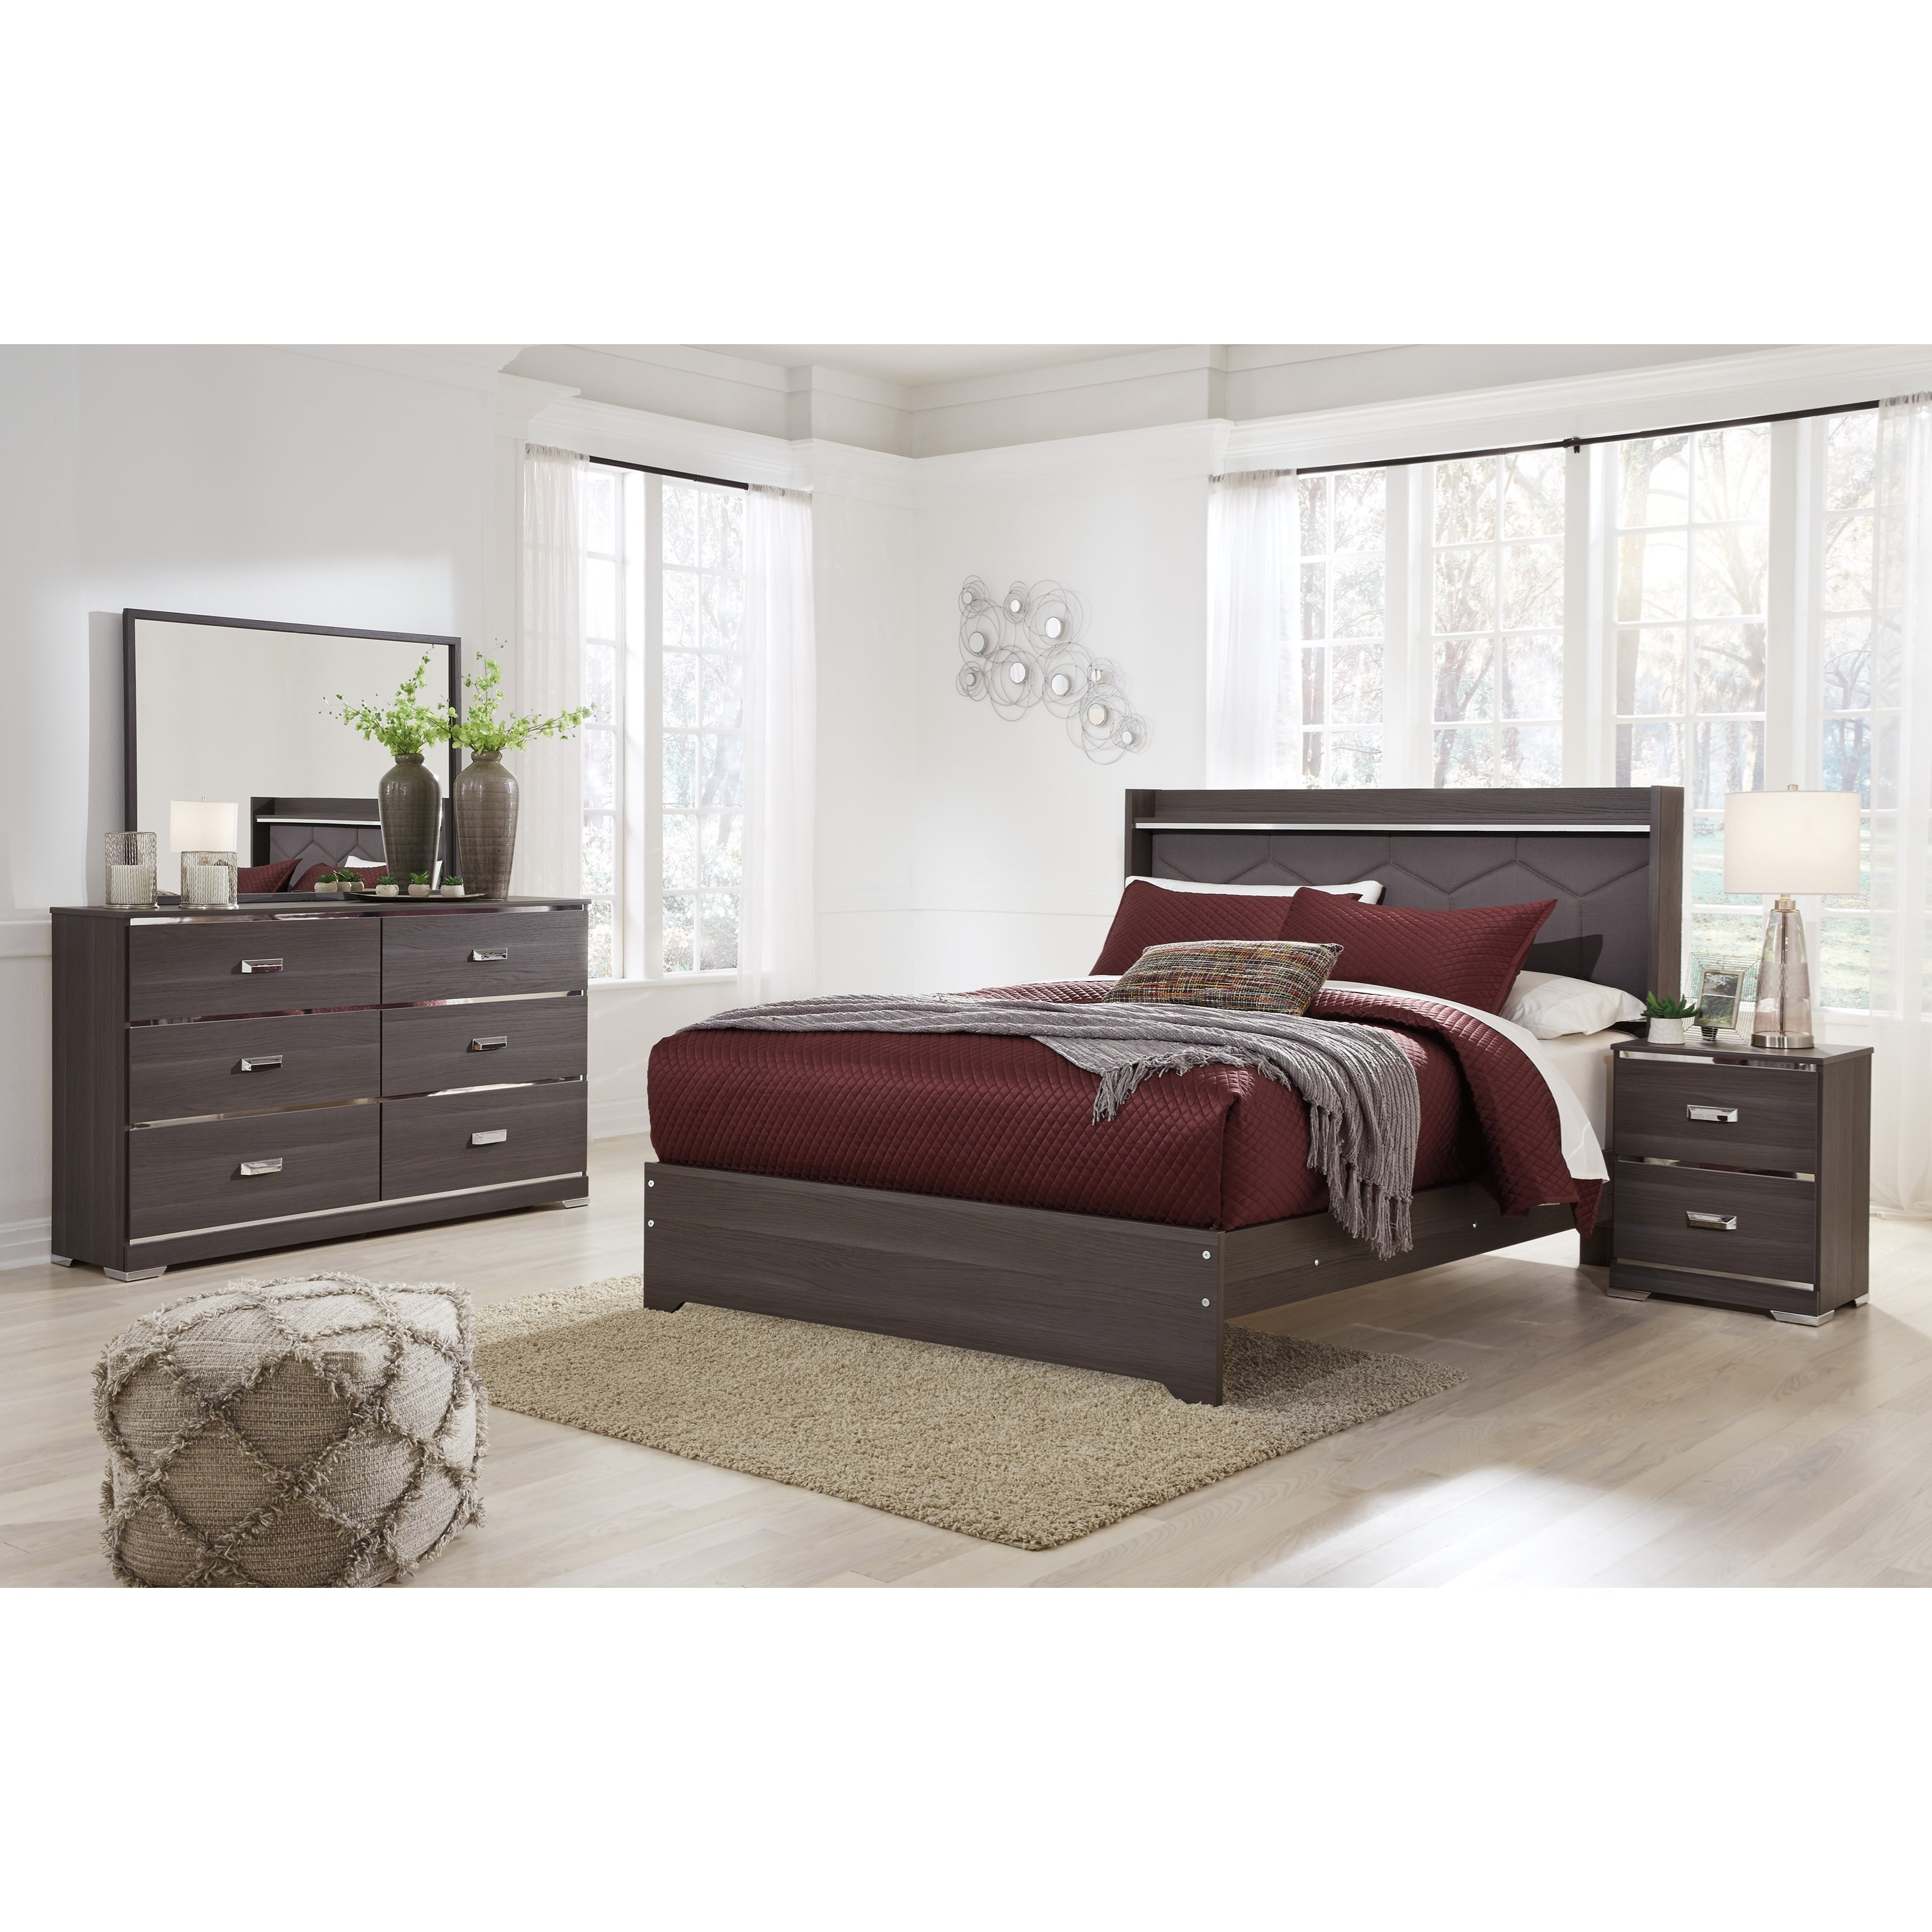 Signature Design by Ashley Annikus Queen Bedroom Group - Item Number: B132 Q Bedroom Group 2